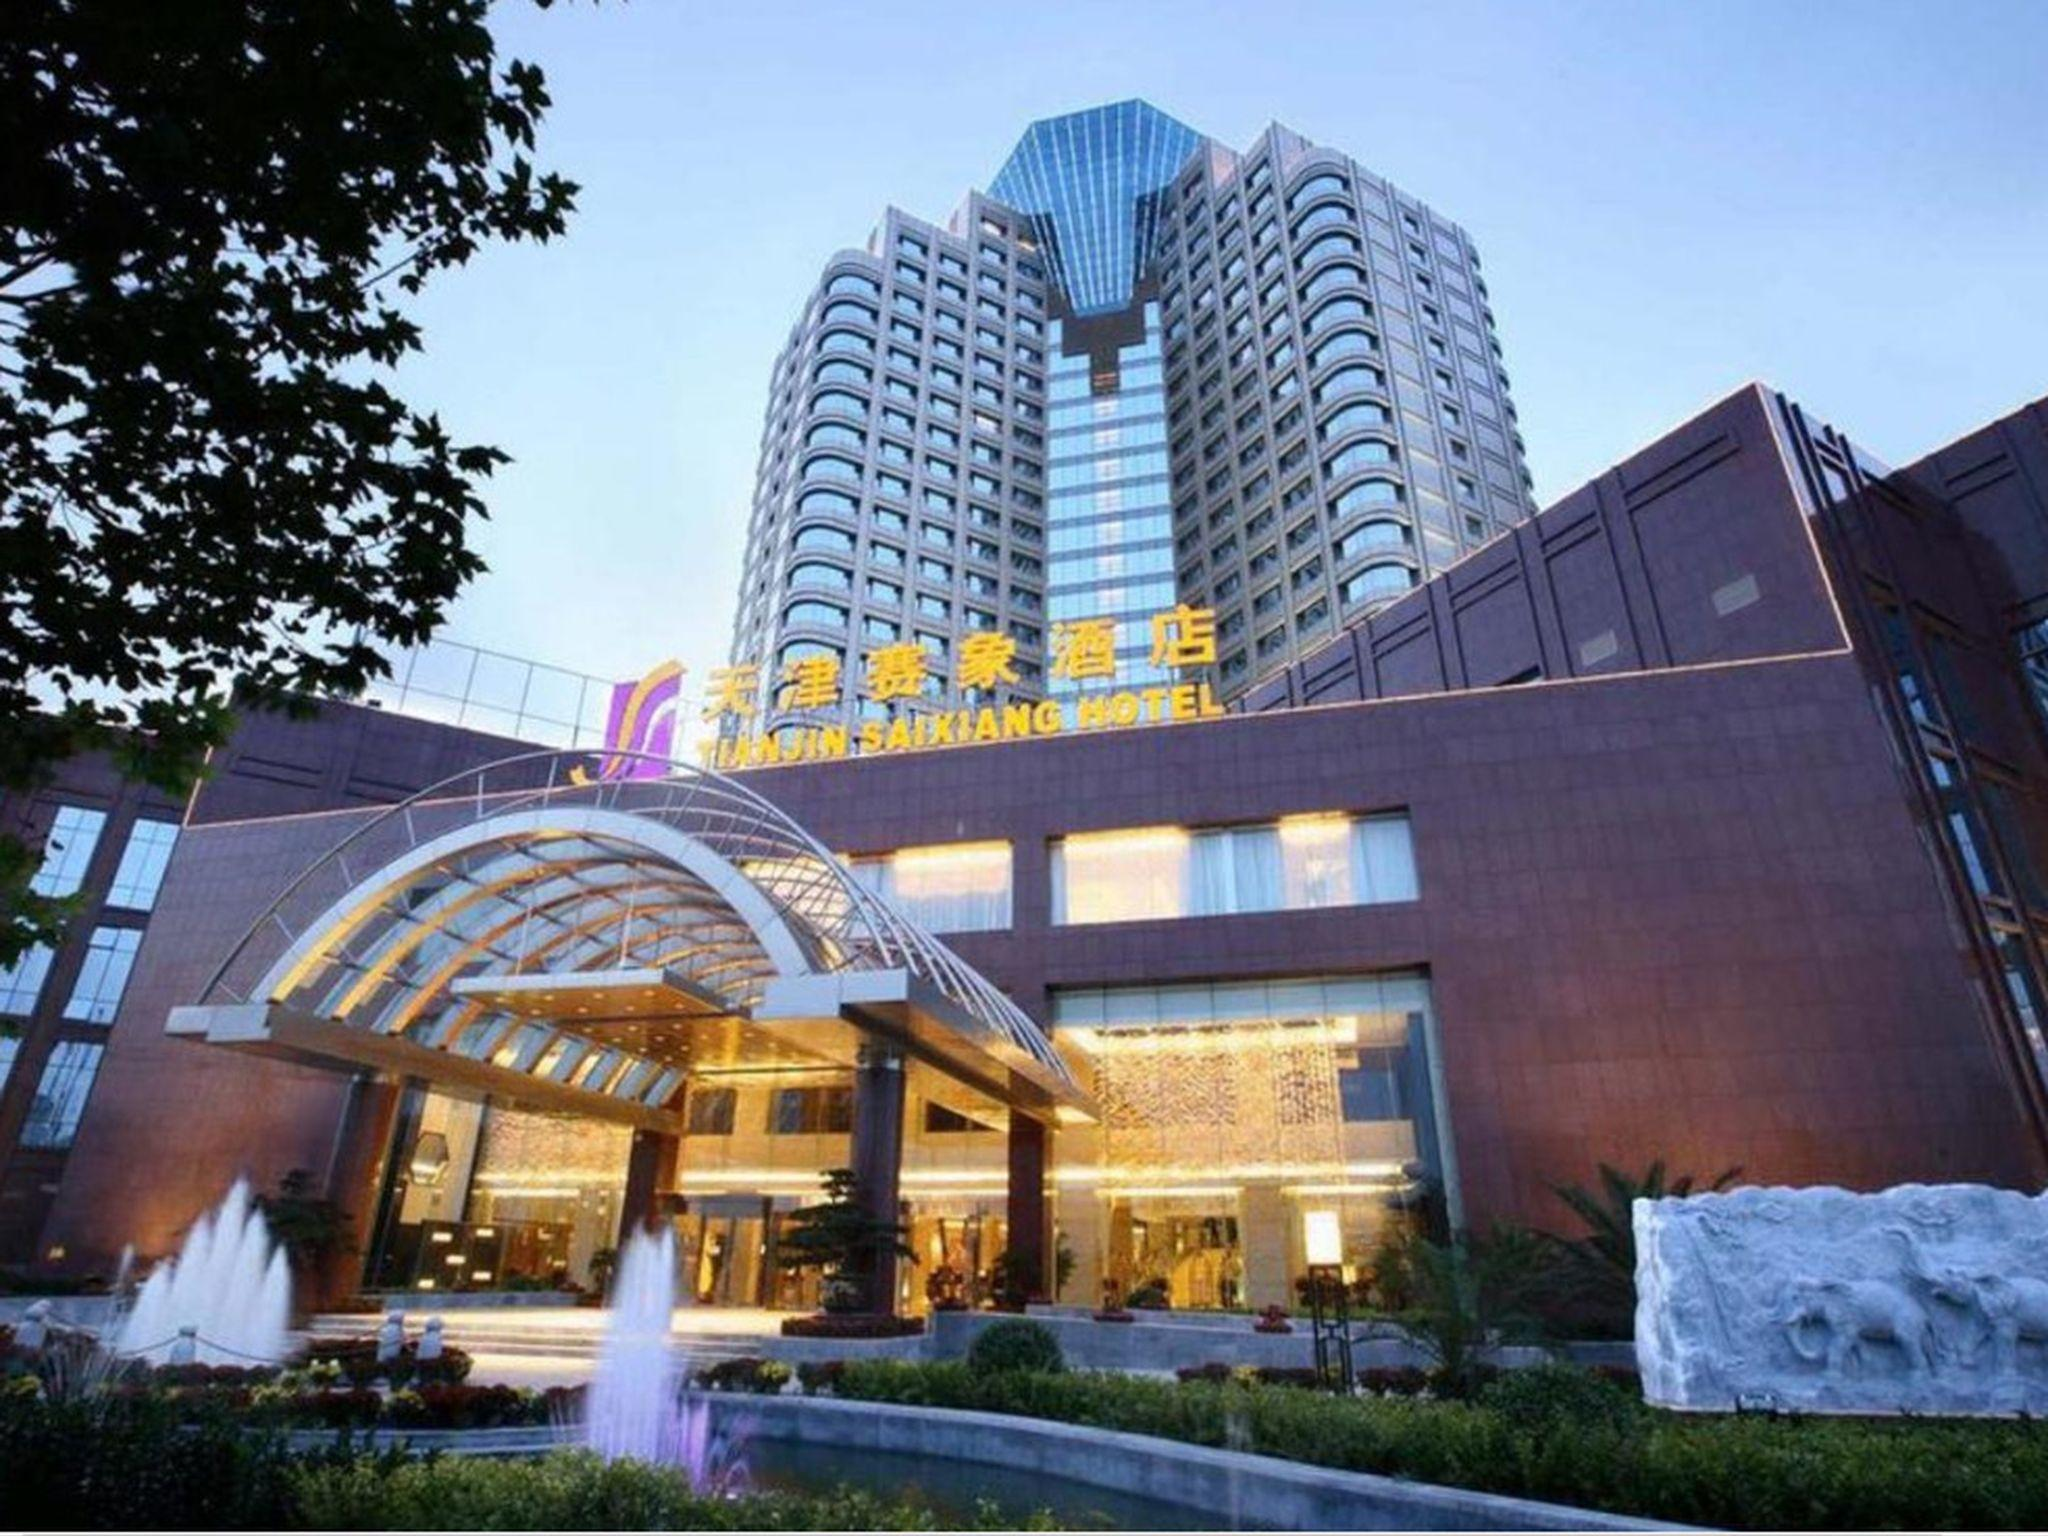 Tianjin Saixiang Hotel – Pictures, Price and Deals